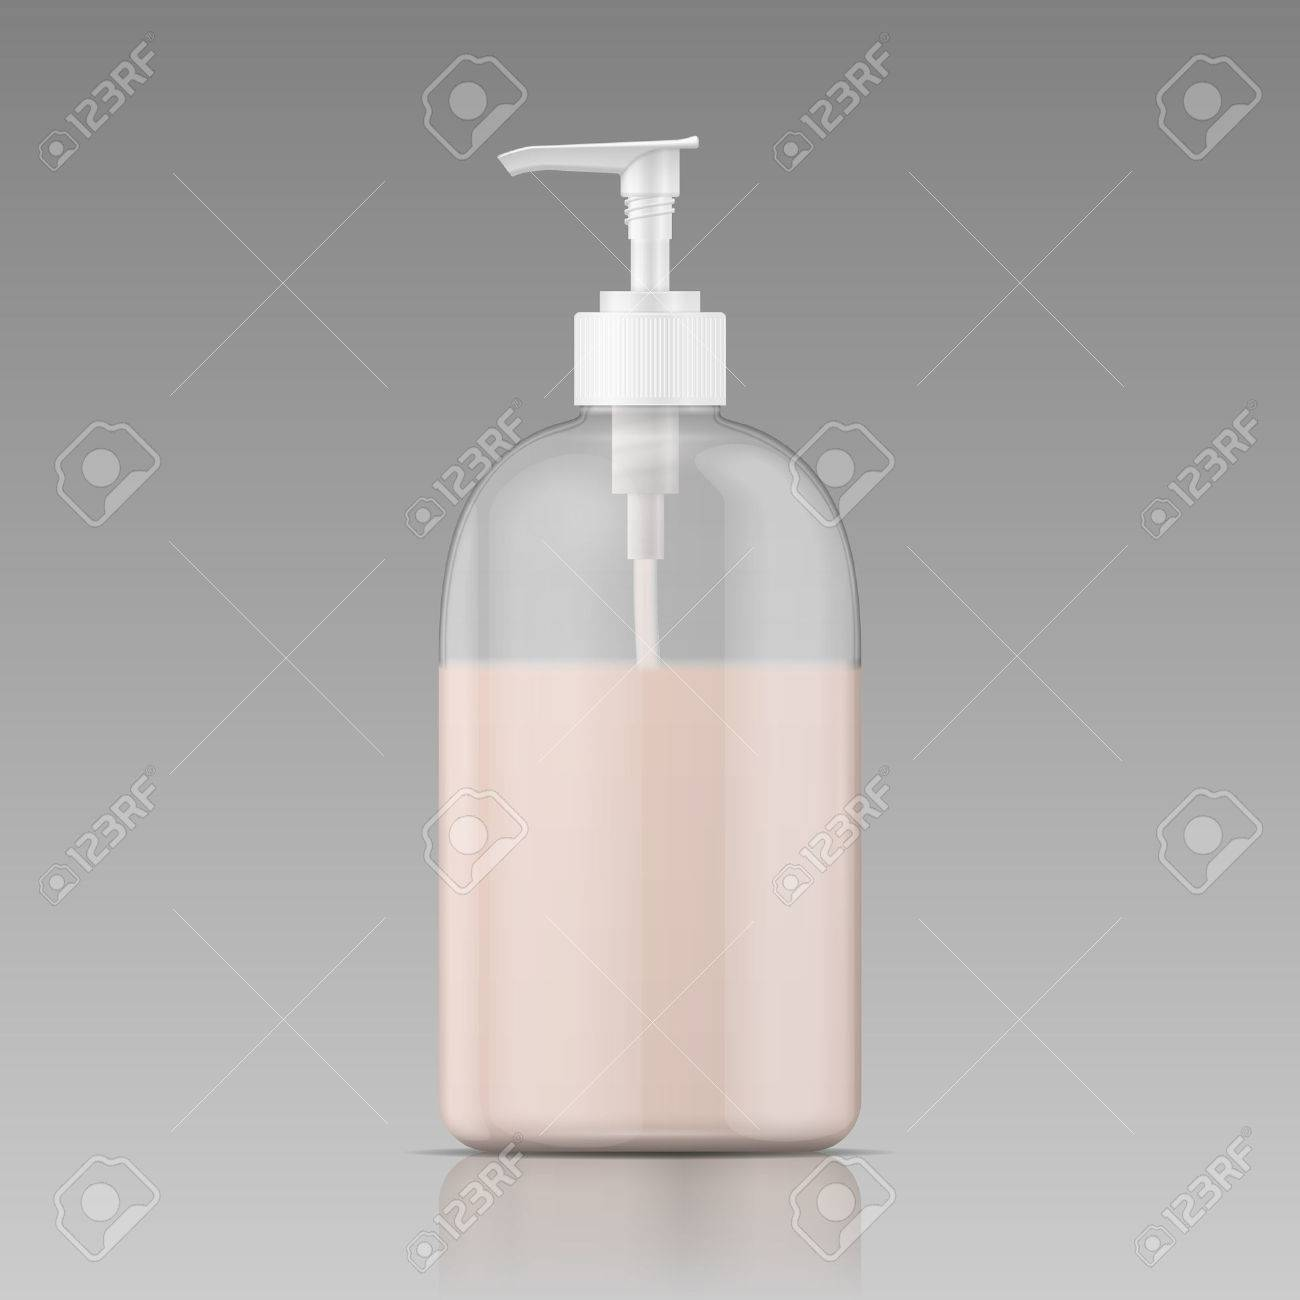 plastic bottle with dispenser cap with liquid soap shampoo shower gel lotion